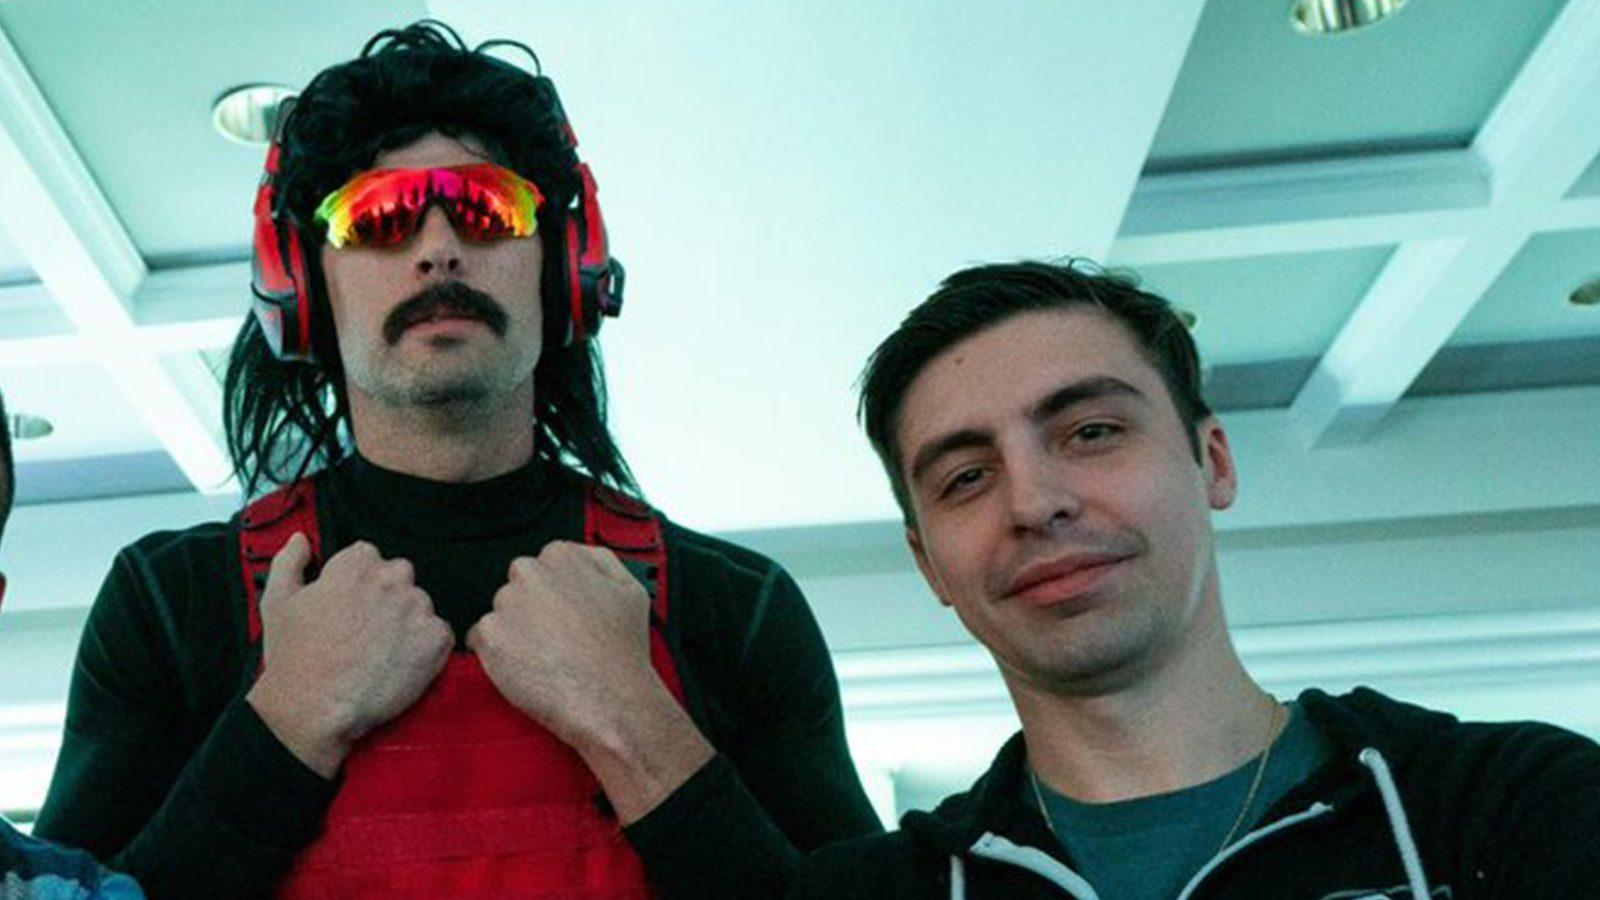 An image of Shroud and Dr Disrespect standing together